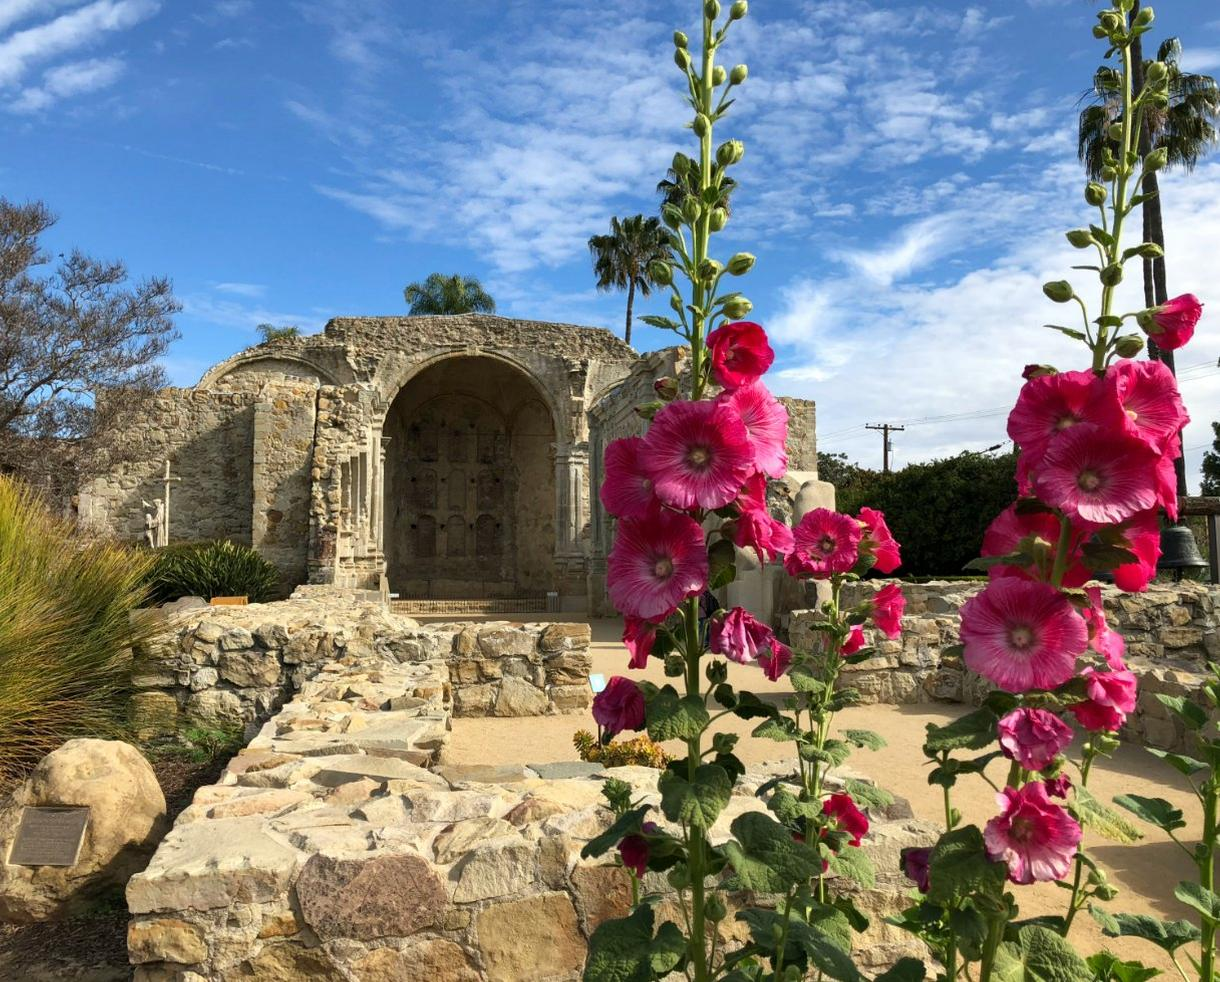 Two Weekday Admissions to Mission San Juan Capistrano